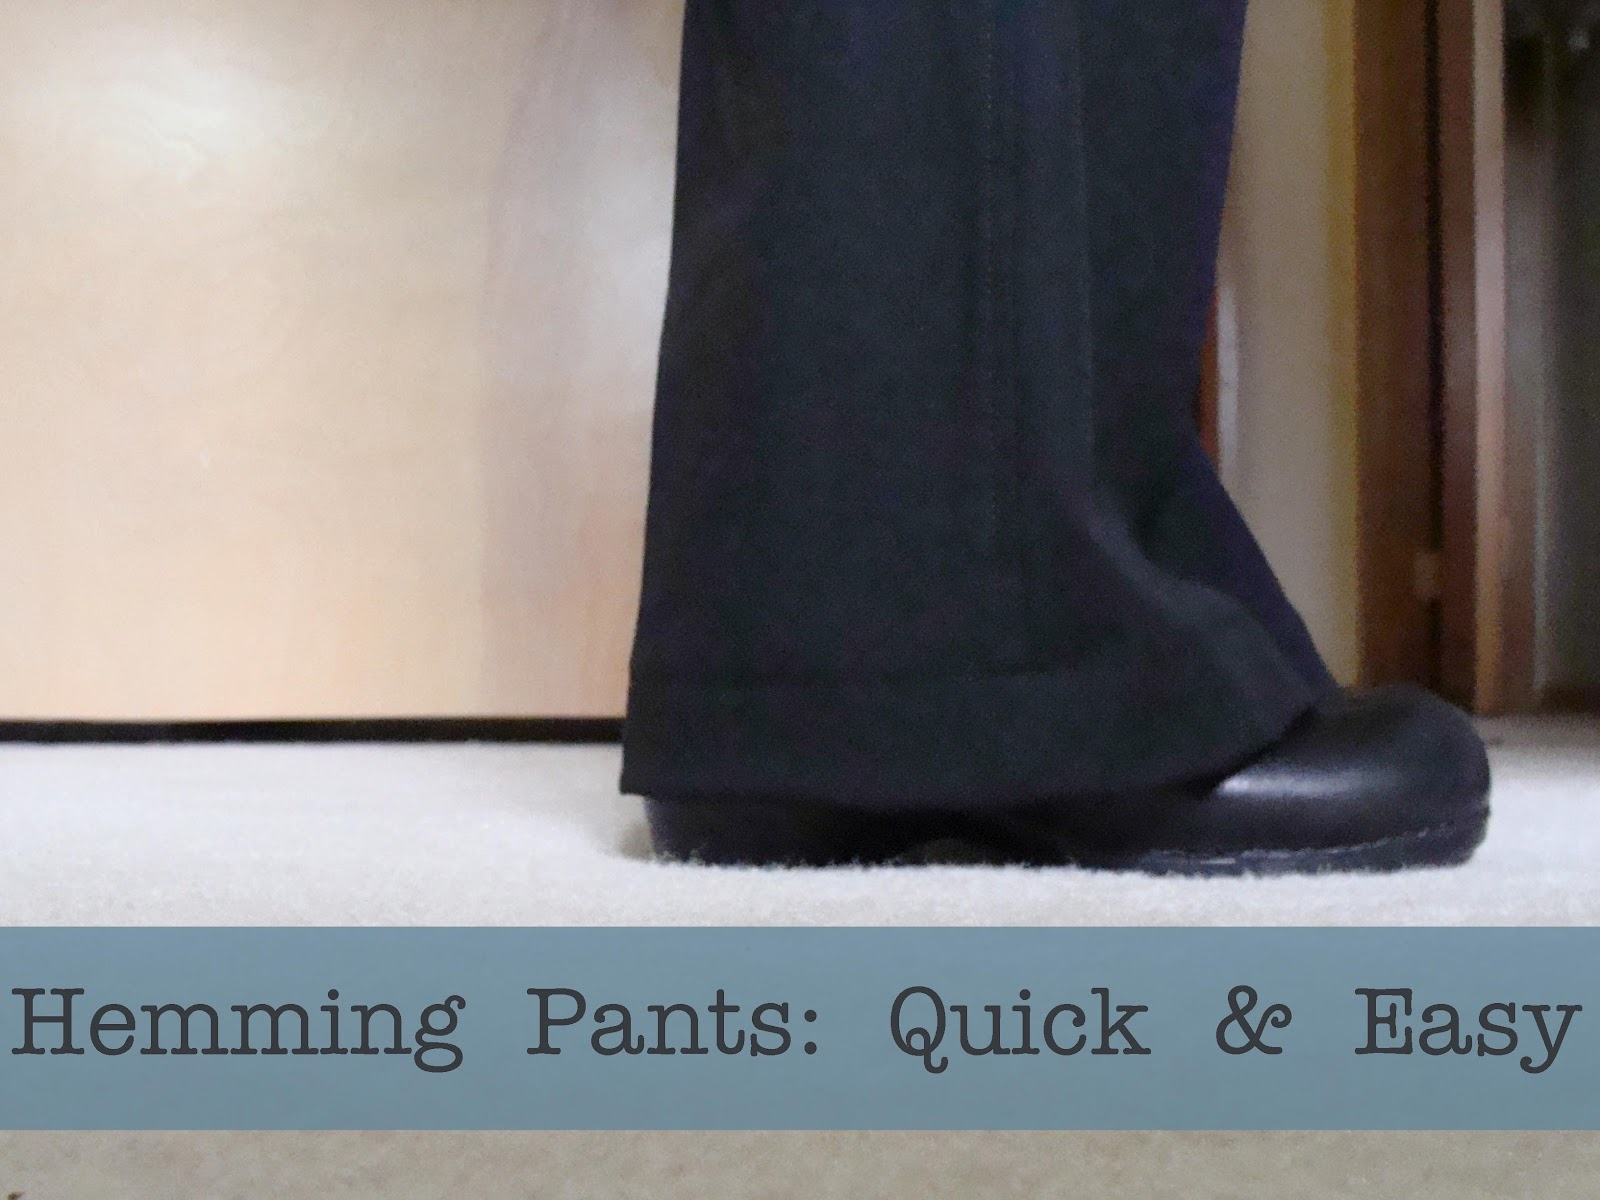 Sewing tutorials crafts diy handmade shannon sews blog for hem pants tutorial quick and easy method ccuart Image collections